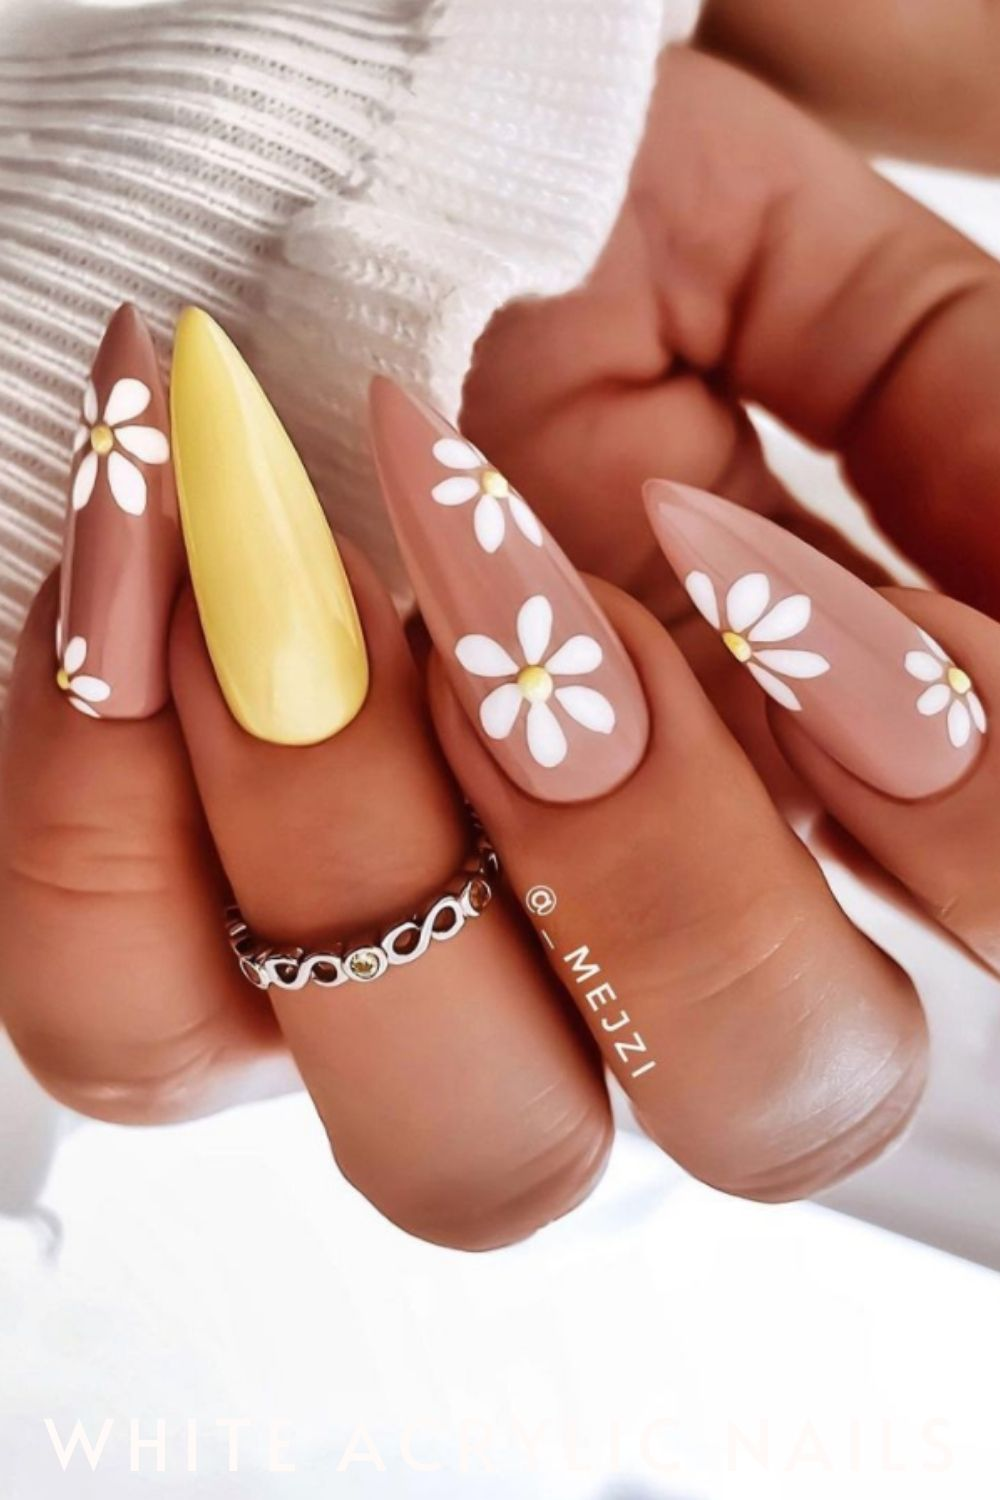 Pink and yellow almond nails with white flower